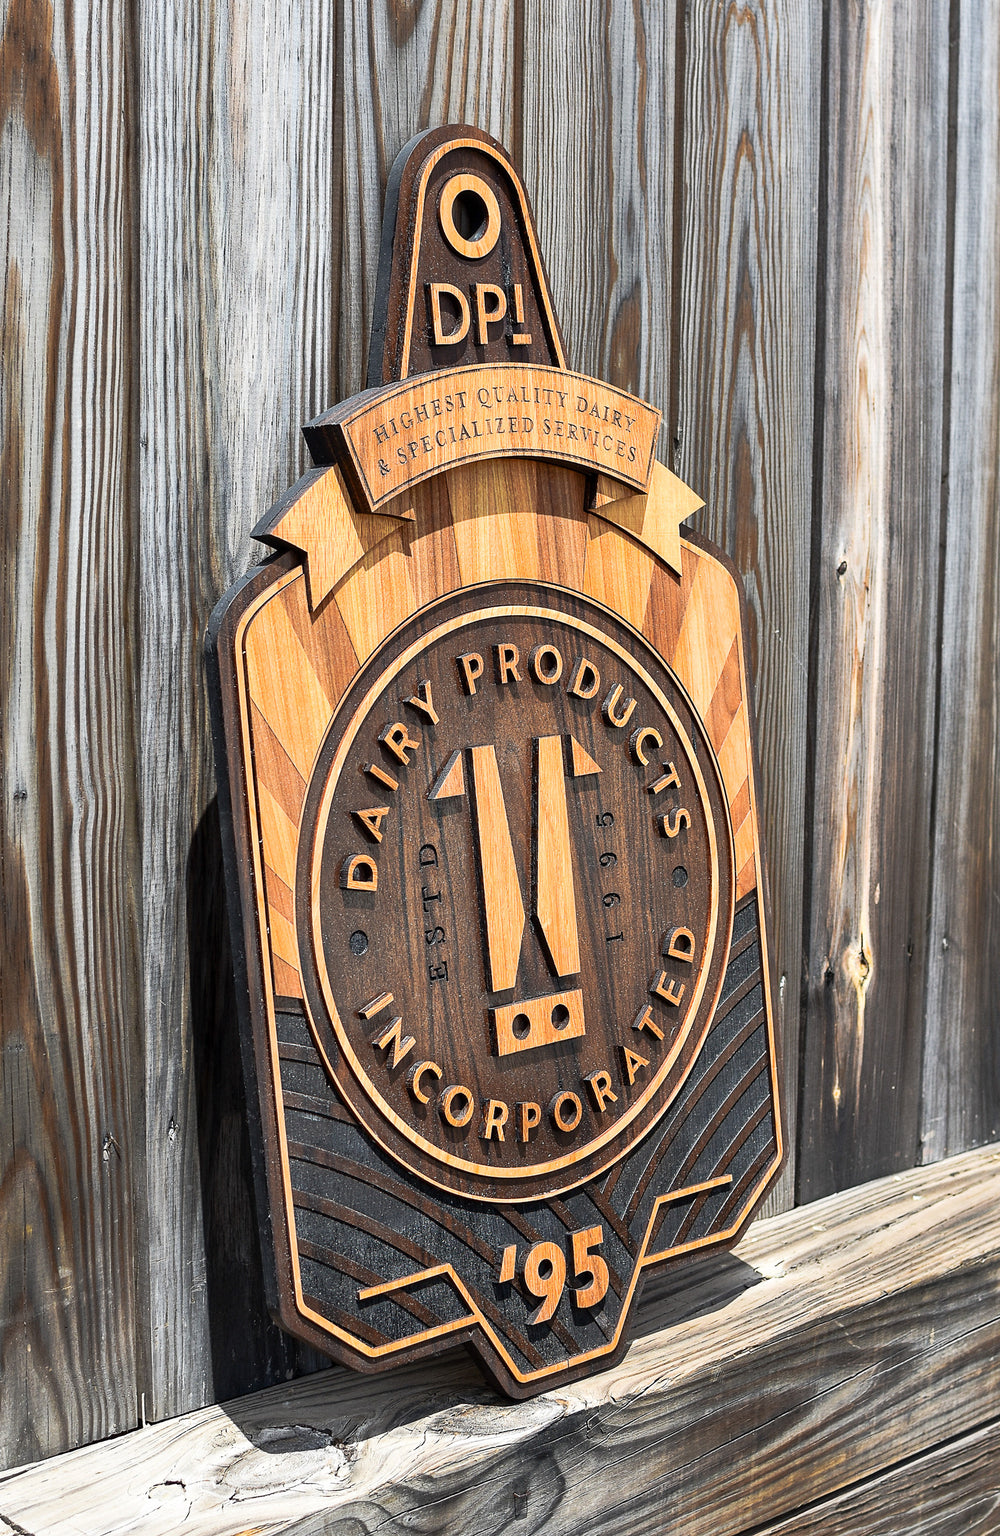 Multi layer, laser cut and engraved, reclaimed walnut, cherry, and white oak sign for dairy products incorporated